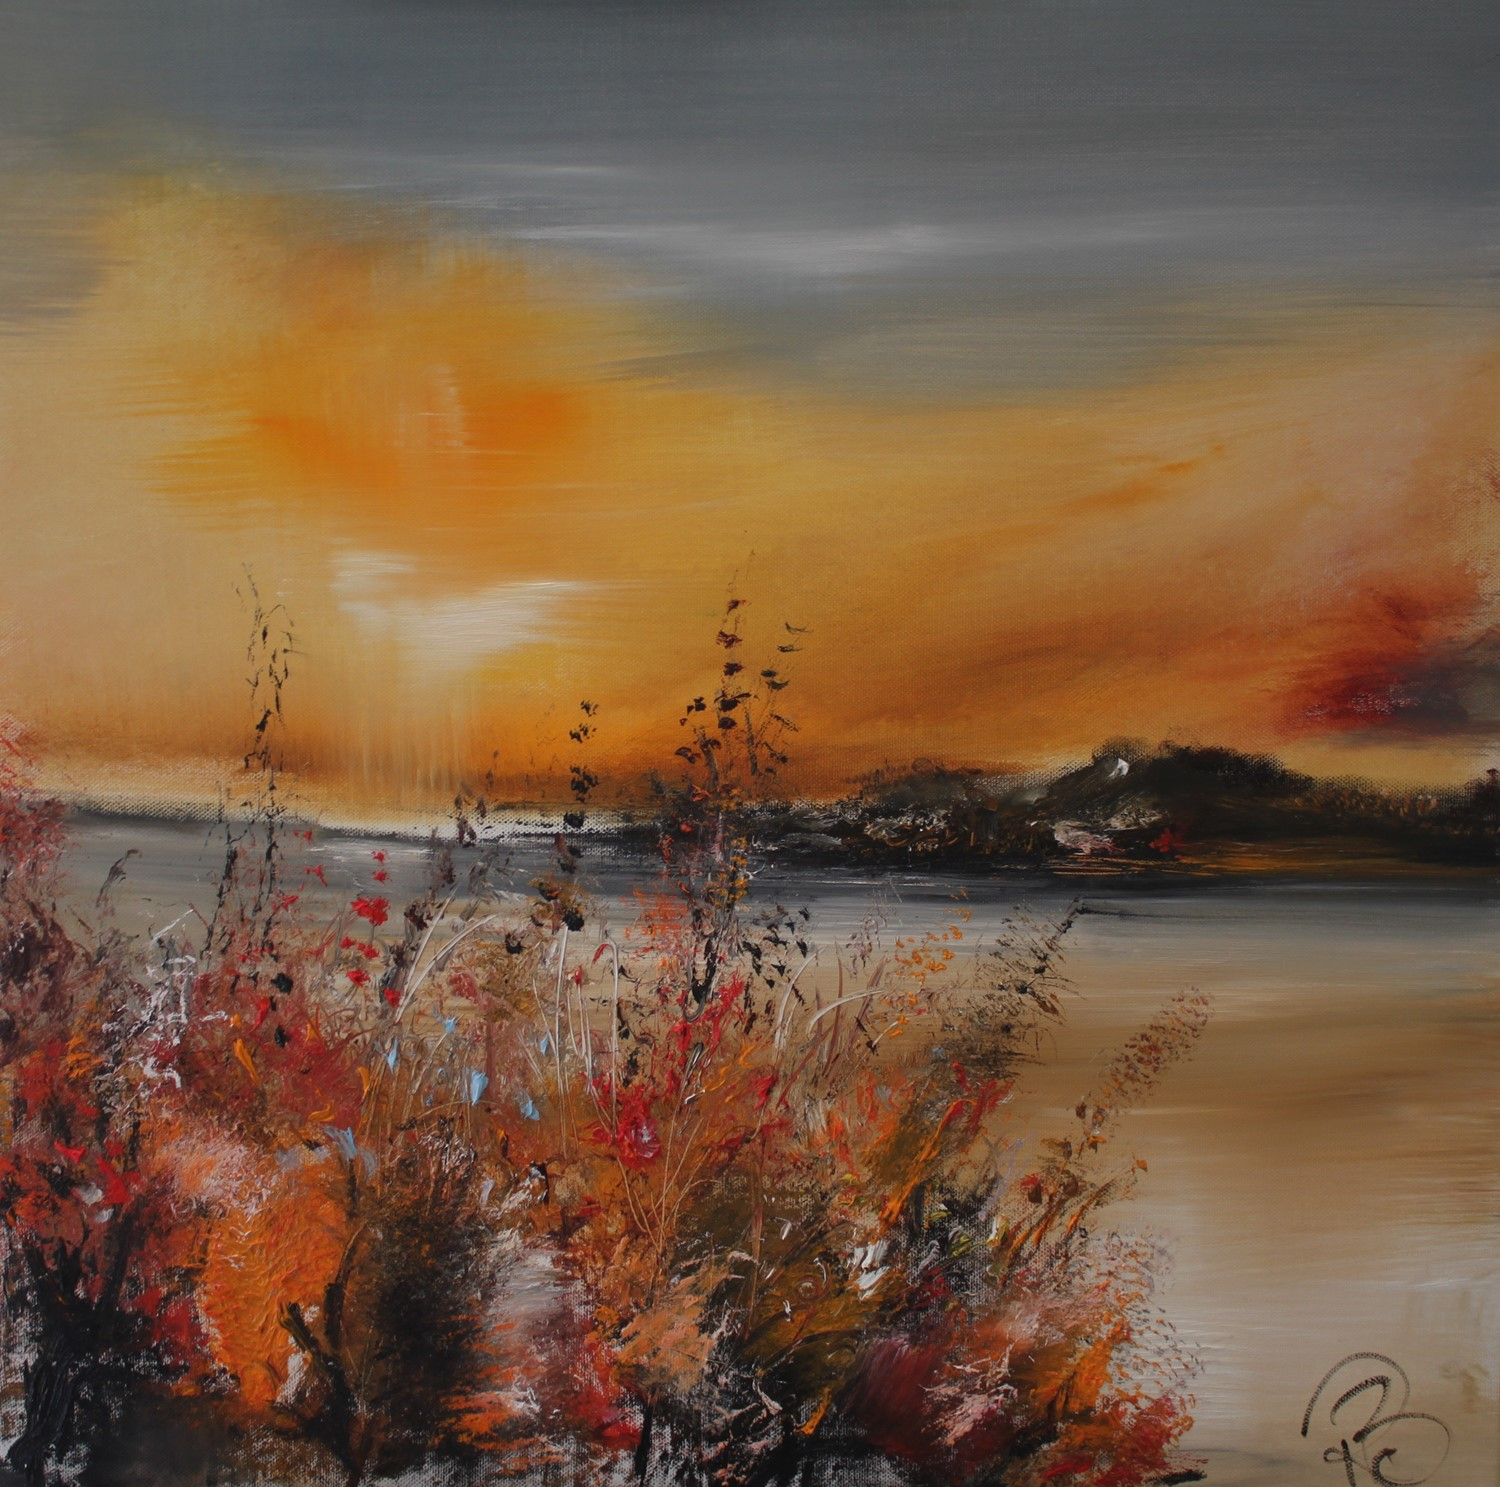 'Autumn is Here' by artist Rosanne Barr